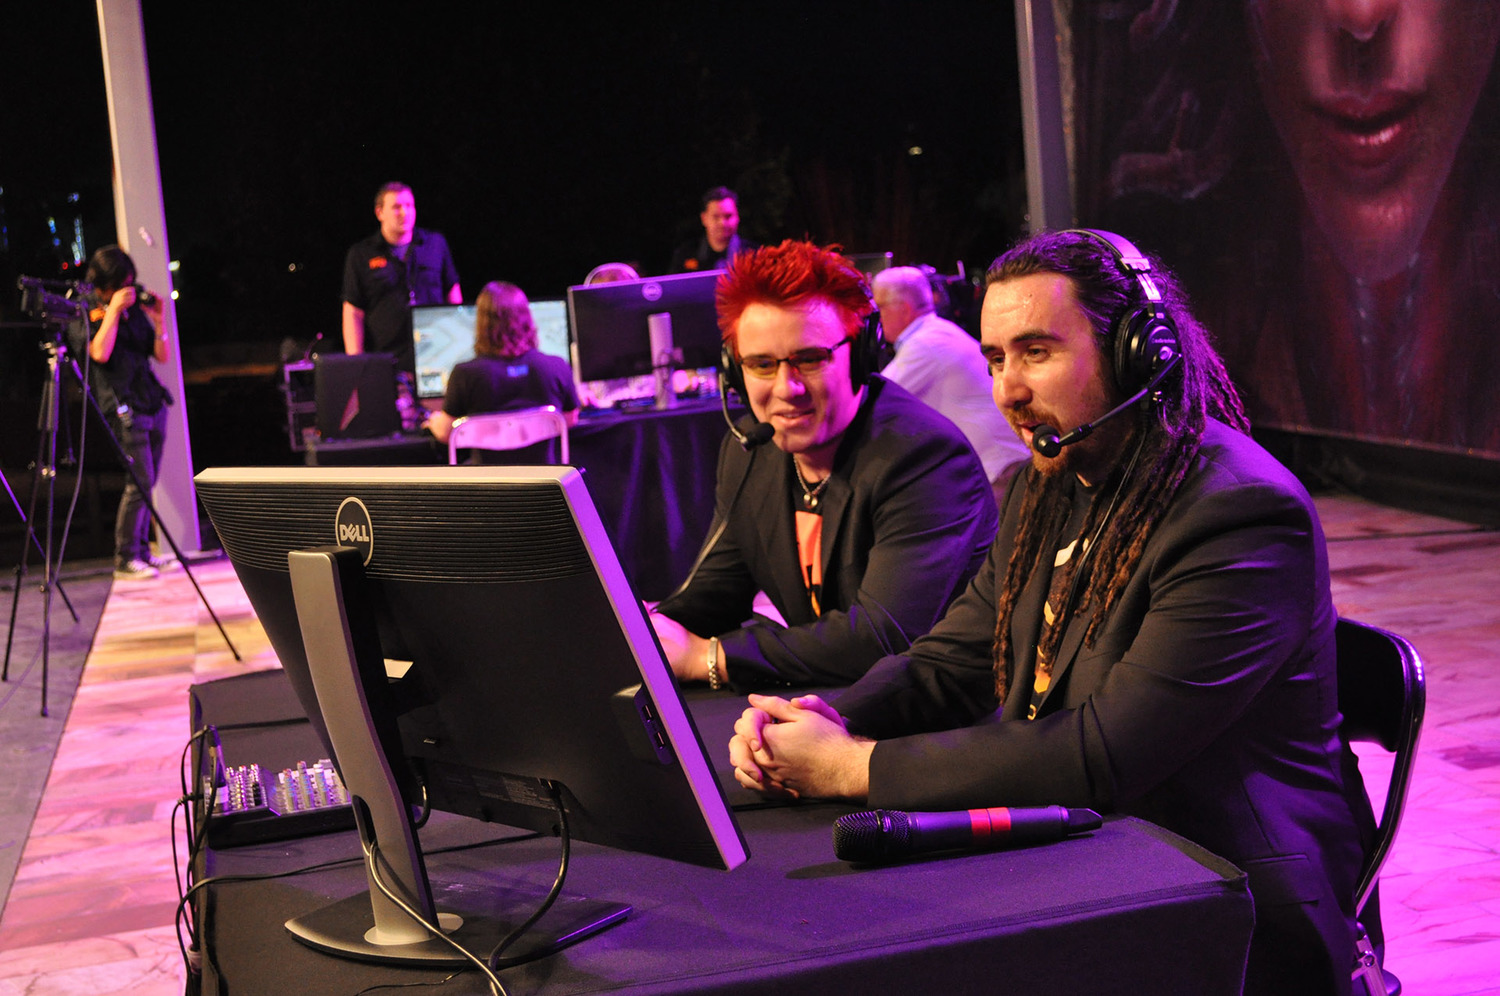 Flamga and Maynarde casting at the Heart of the Swarm Launch